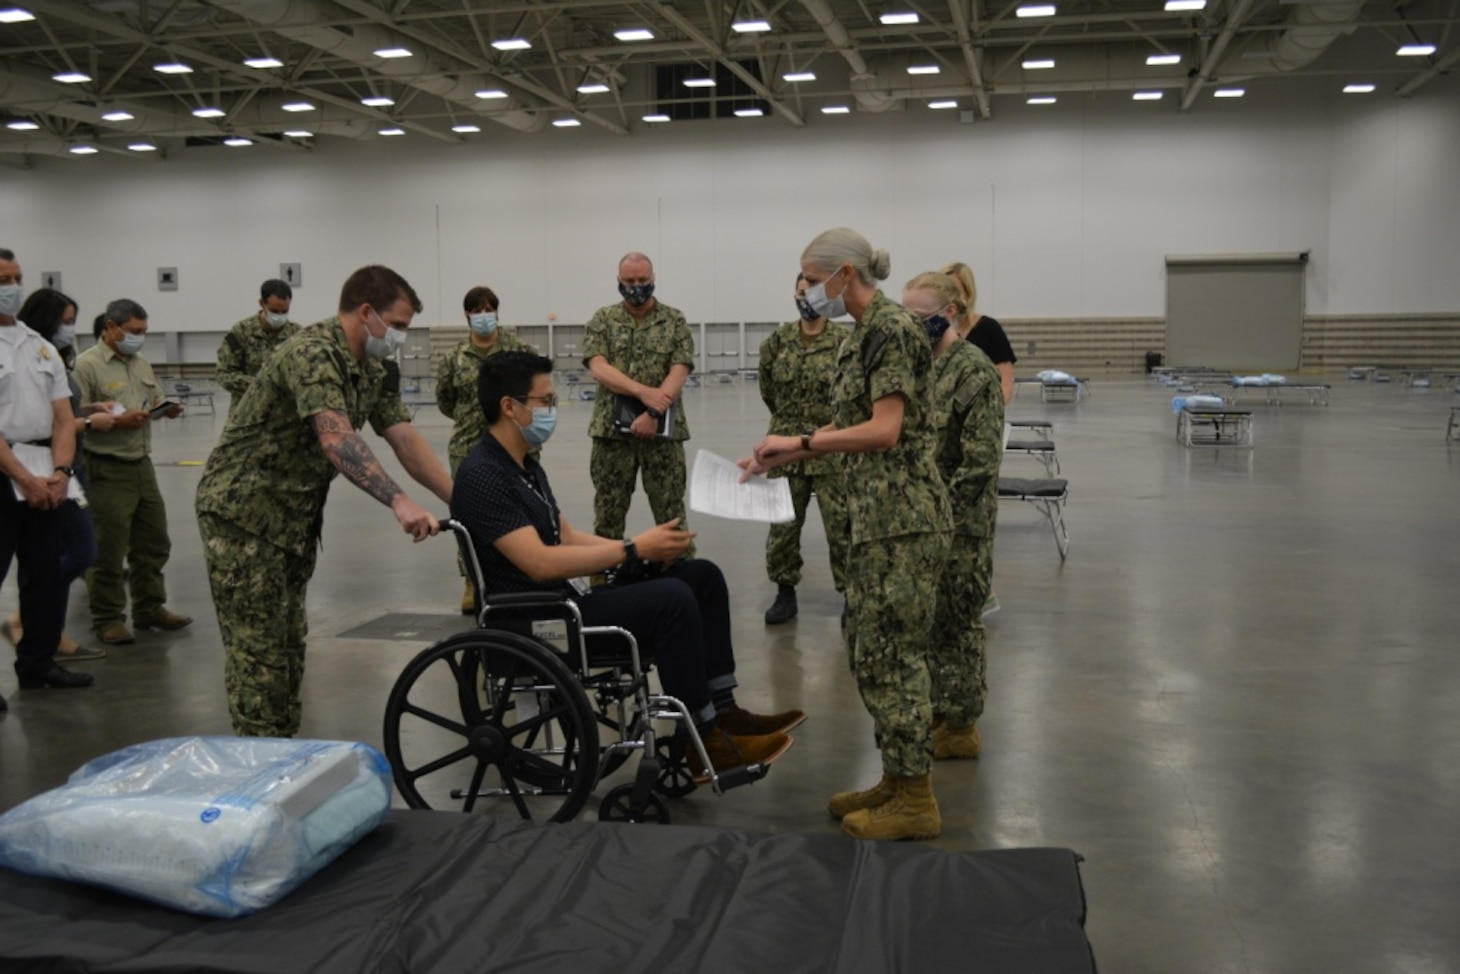 Sailors assigned to the Expeditionary Medical Facility-M, officials from the Federal Emergency Management Agency and the Department of Health and Human Services conduct a patient scenario exercise in Dallas, Texas in support of the Department of Defense COVID-19 response.